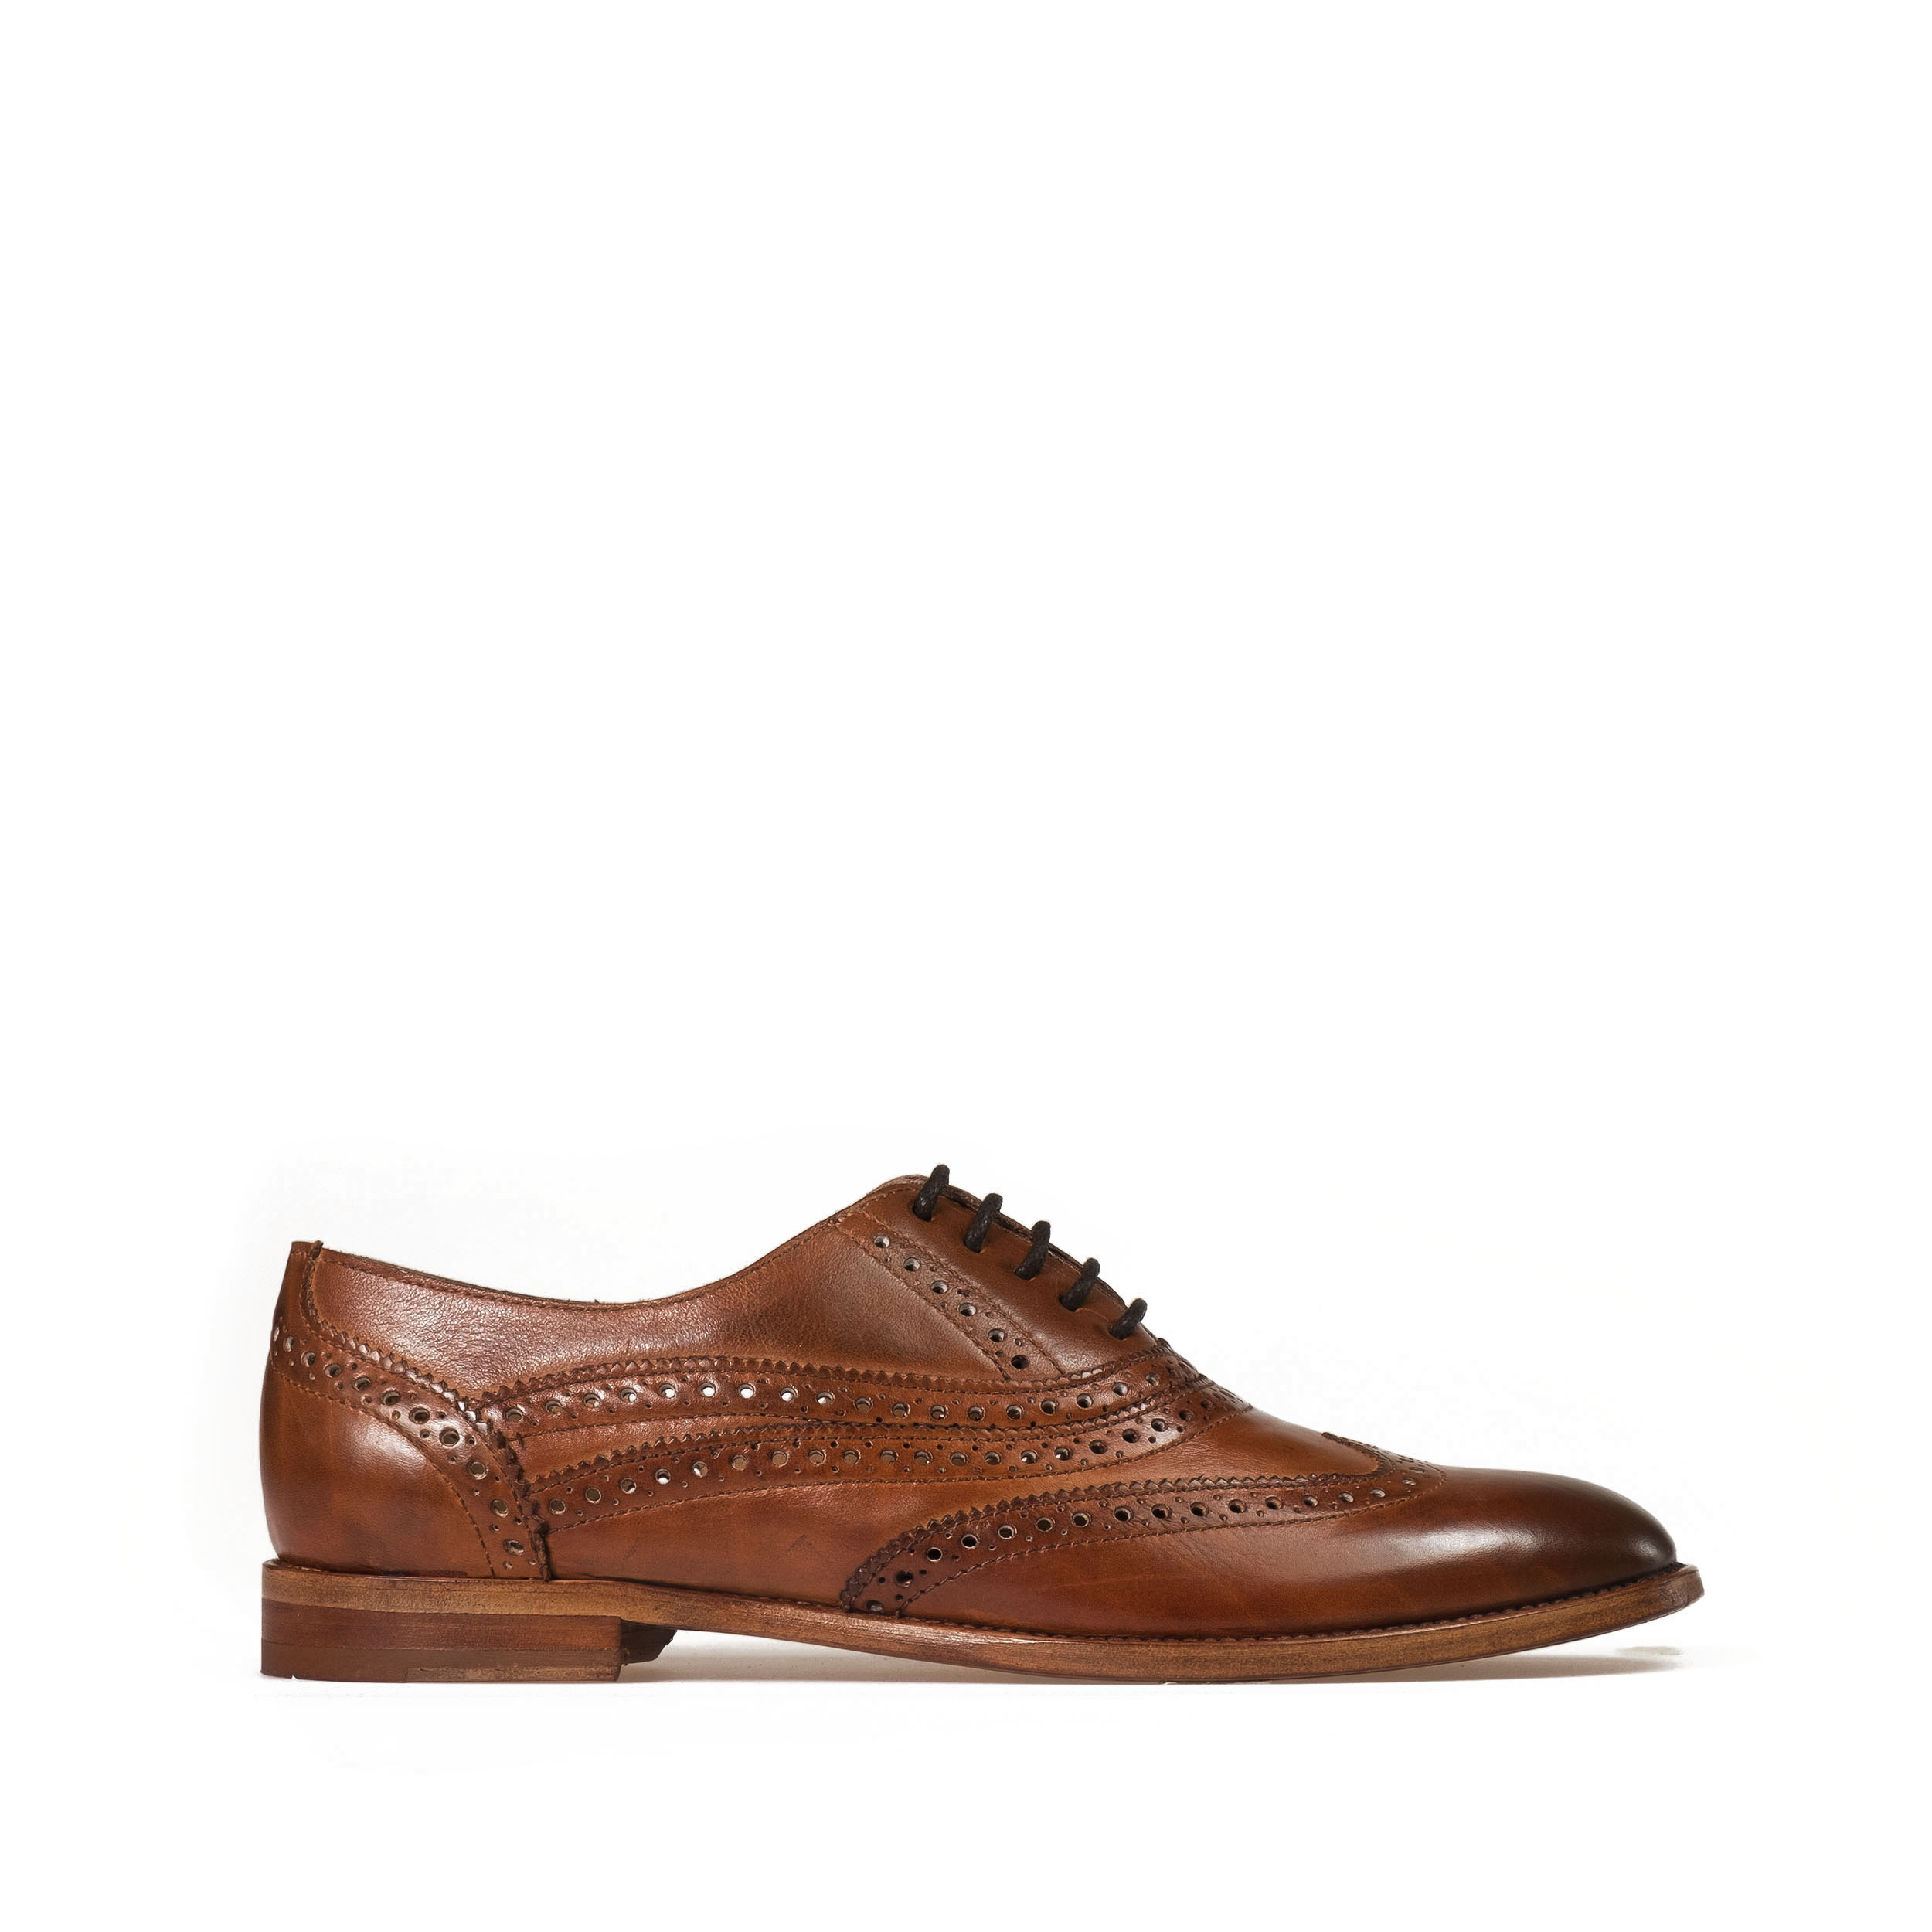 Brogue shoe genuine leather made in Italy